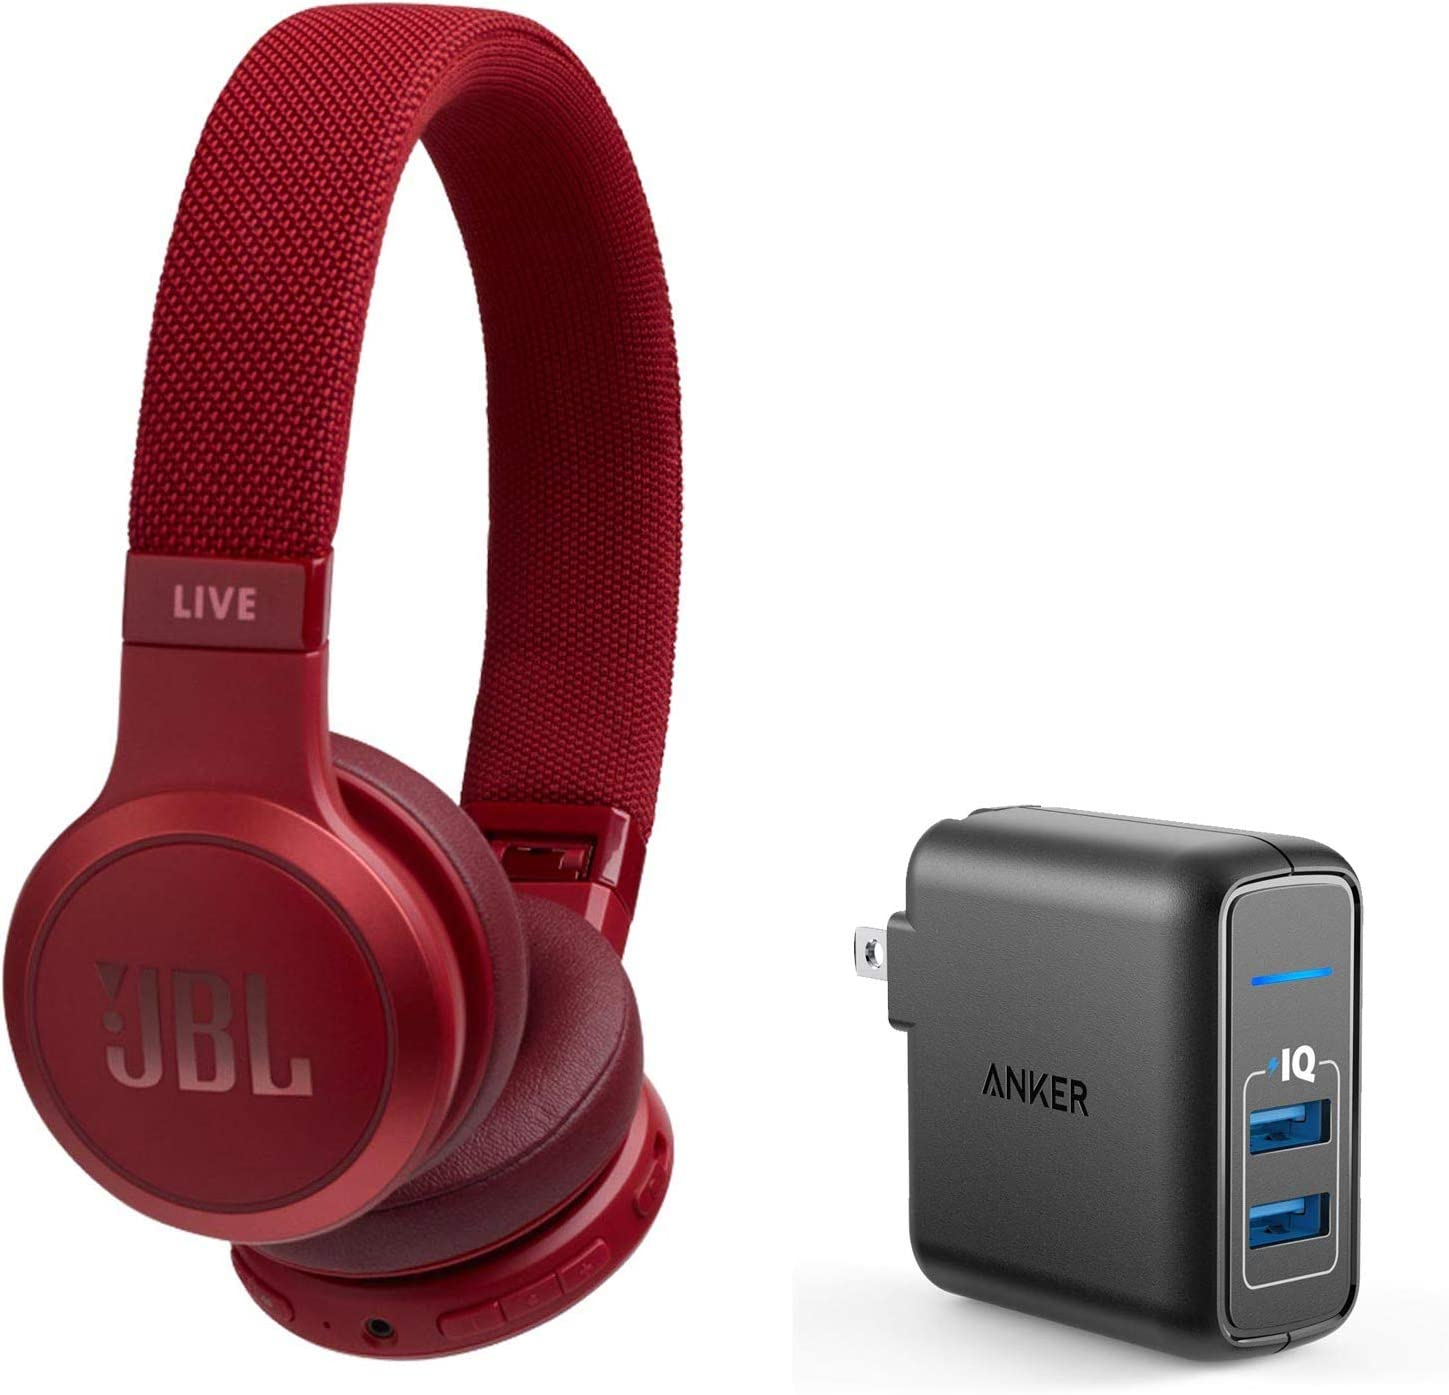 JBL Live 400BT On-Ear Wireless Bluetooth Headphones Bundle with Anker PowerPort Elite 2 Port USB Wall Charger - Red